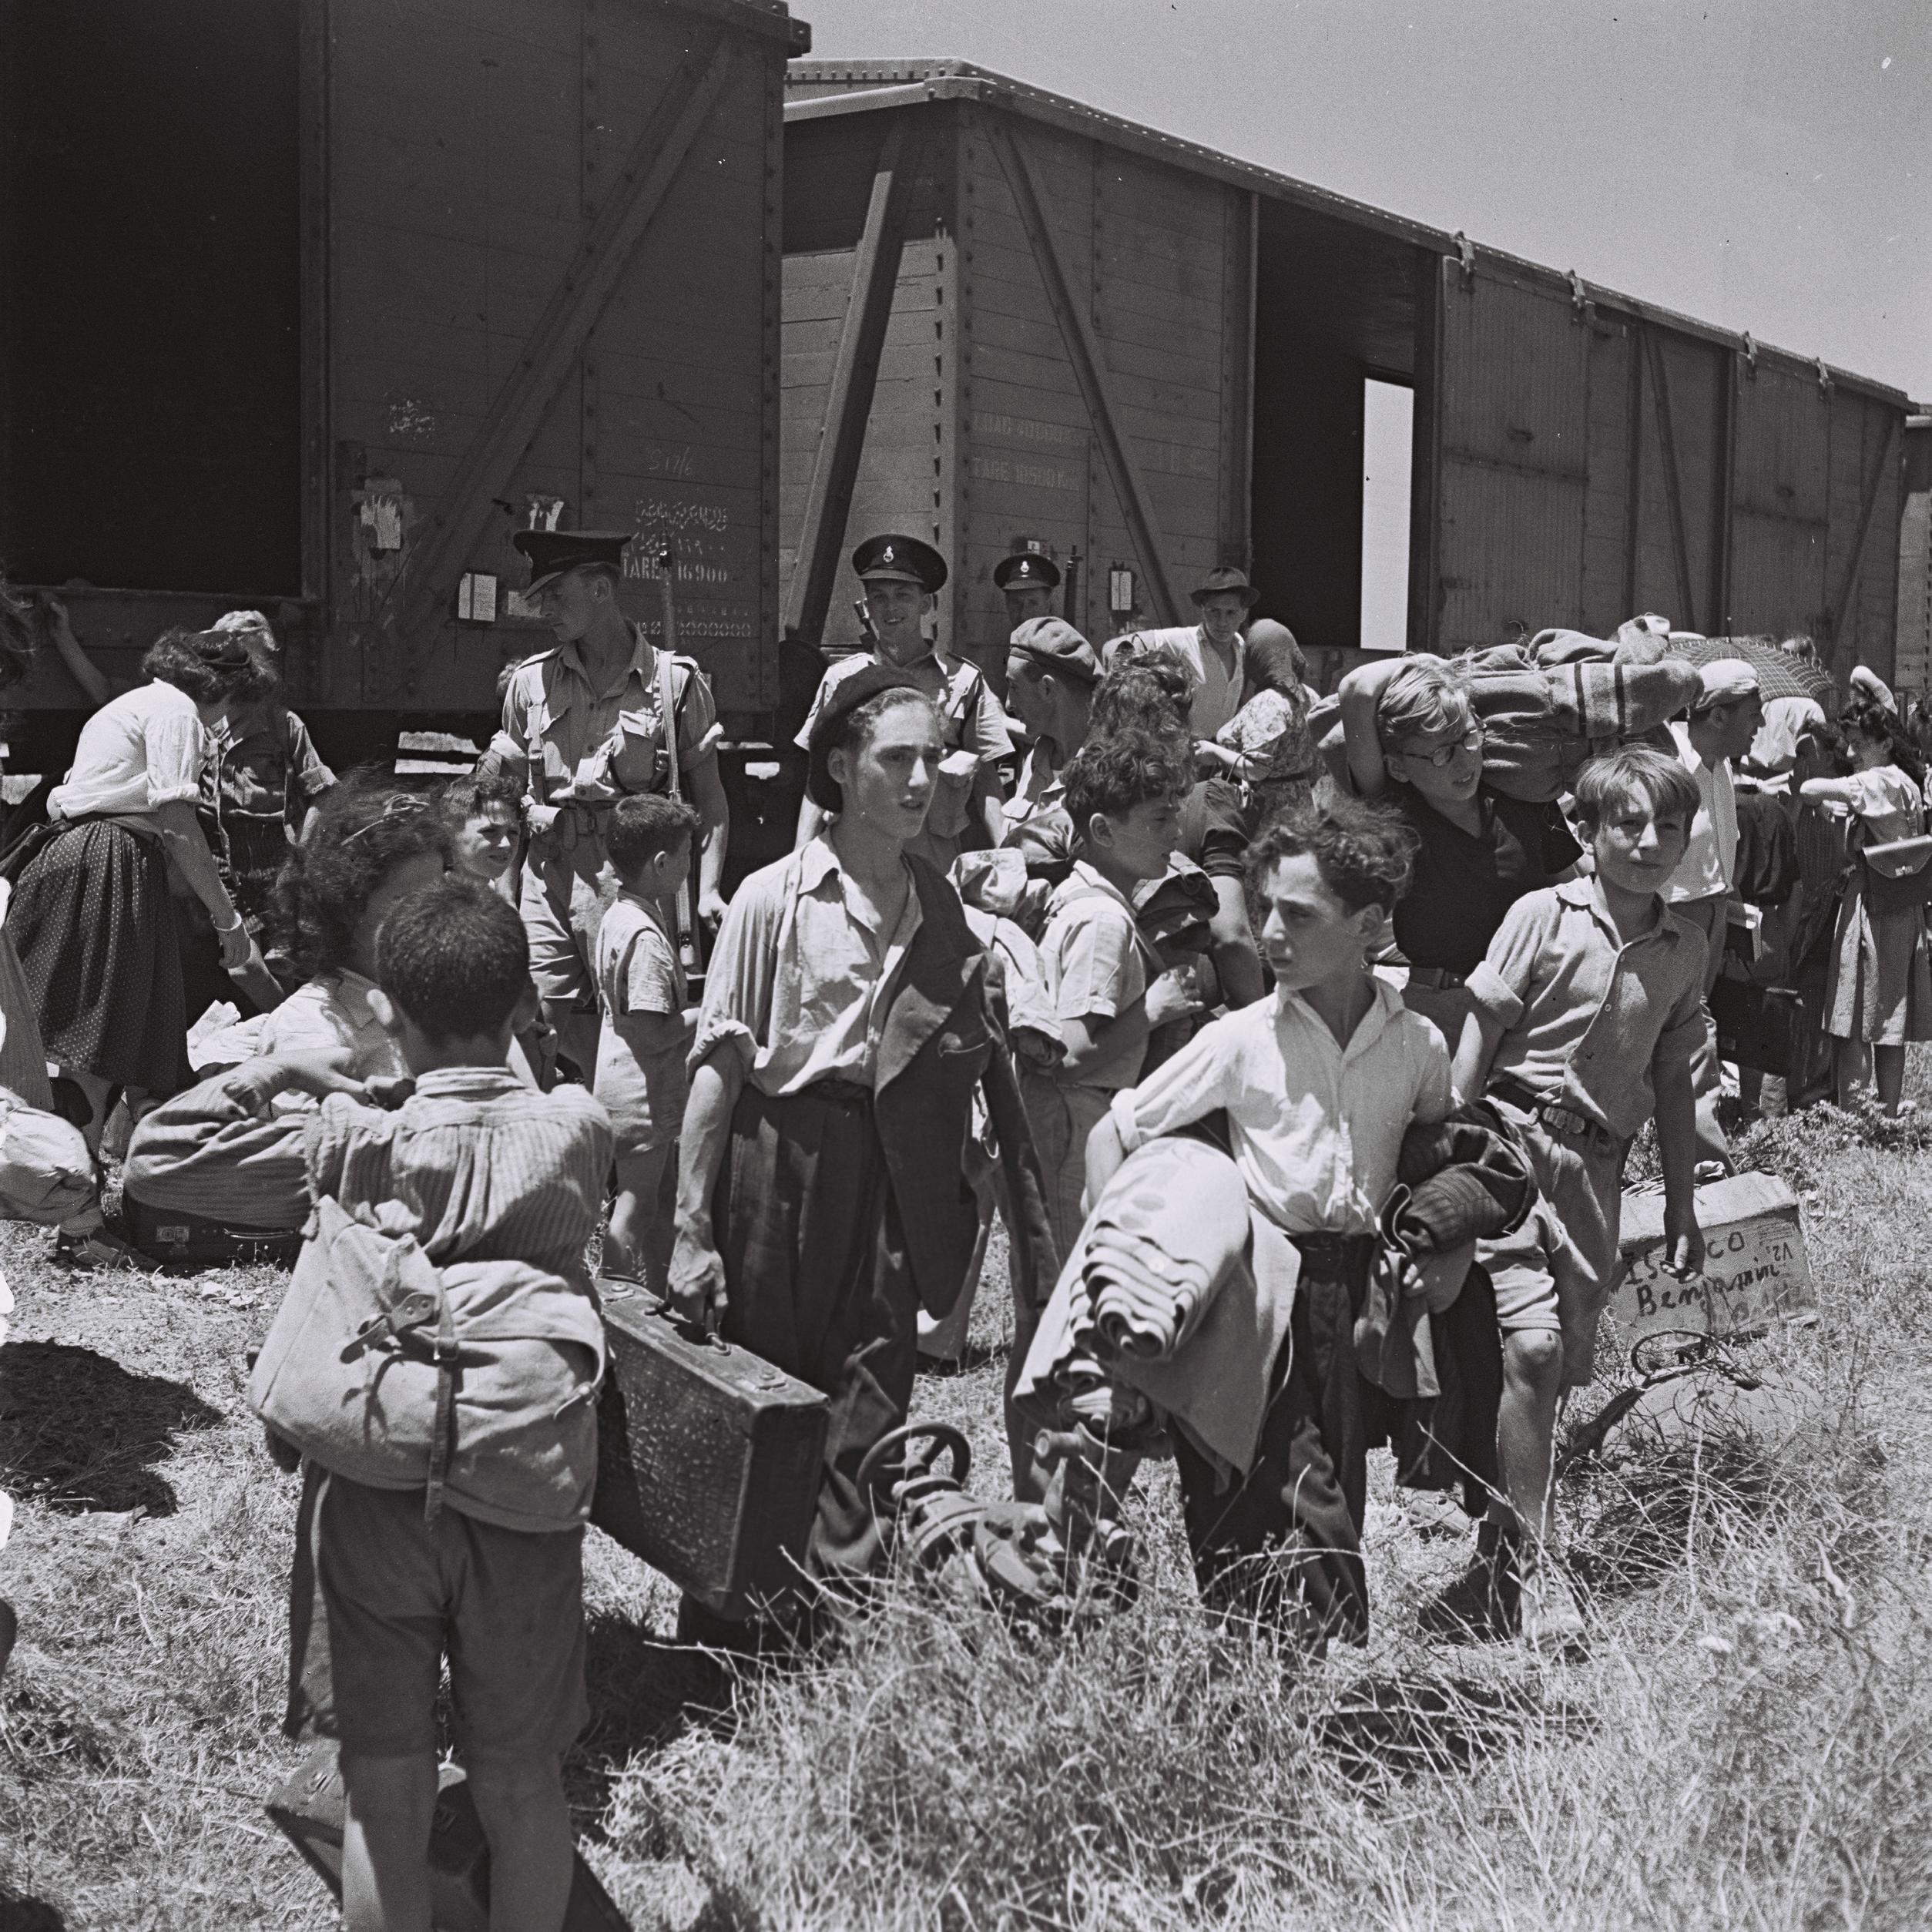 holocaust 2 Alphabetized glossary of pertinent terms to understanding the holocaust a : allies the nations fighting nazi germany and fascist italy during world war ii, primarily great britain, the soviet union and the united states.